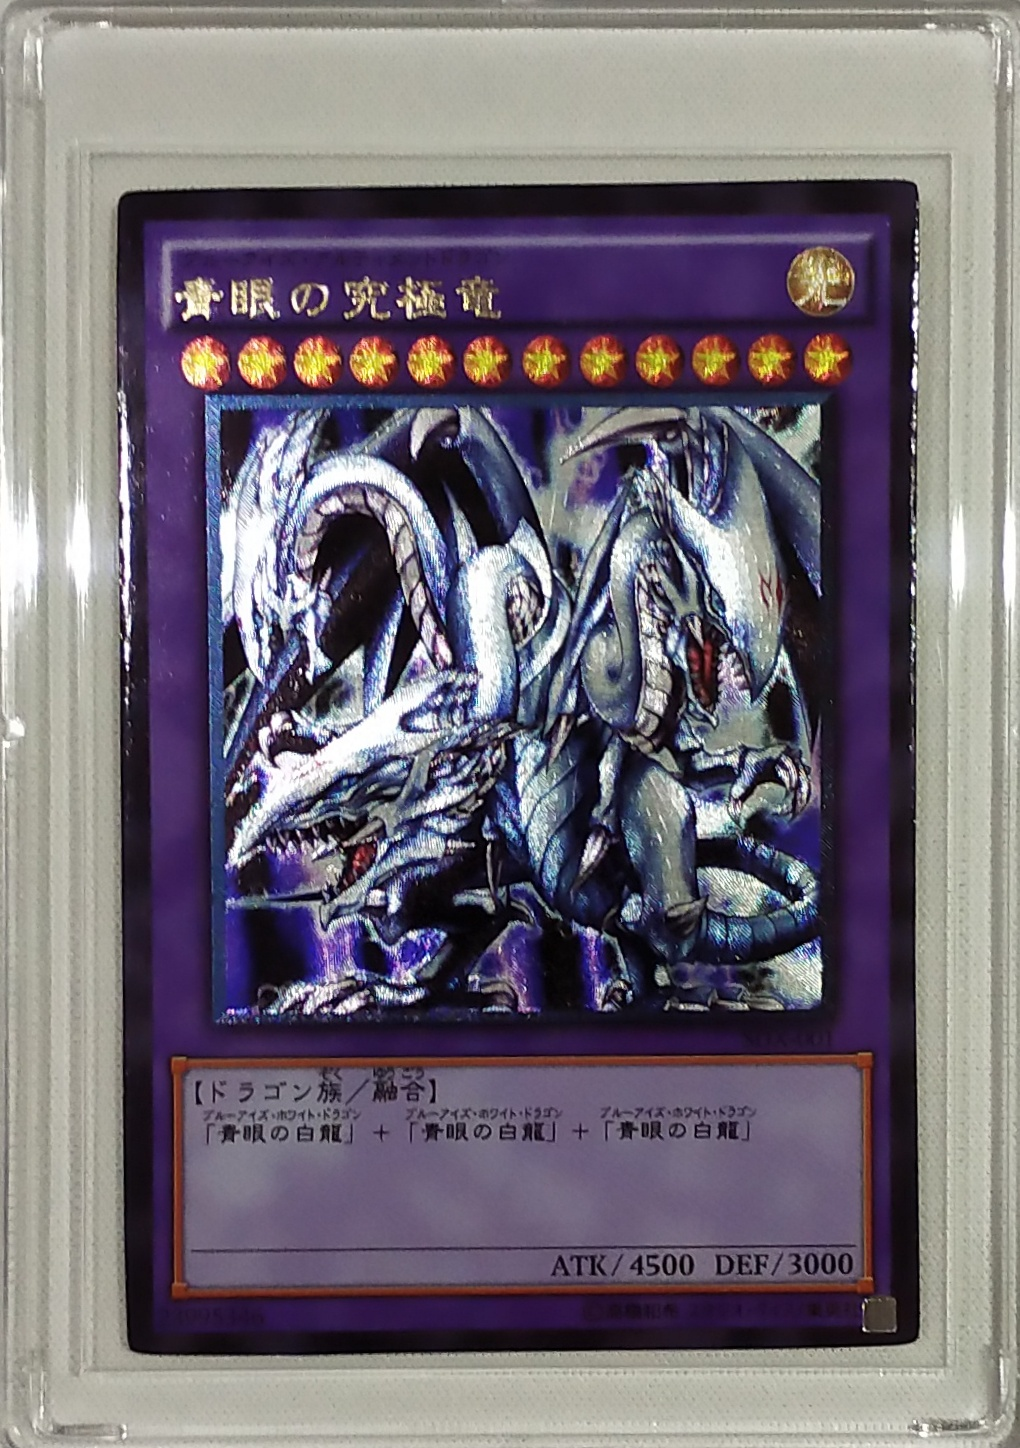 Yu Gi Oh BLUE EYES ULTIMATE DRAGON DIY Toys Hobbies Hobby Collectibles Game Collection Anime Cards